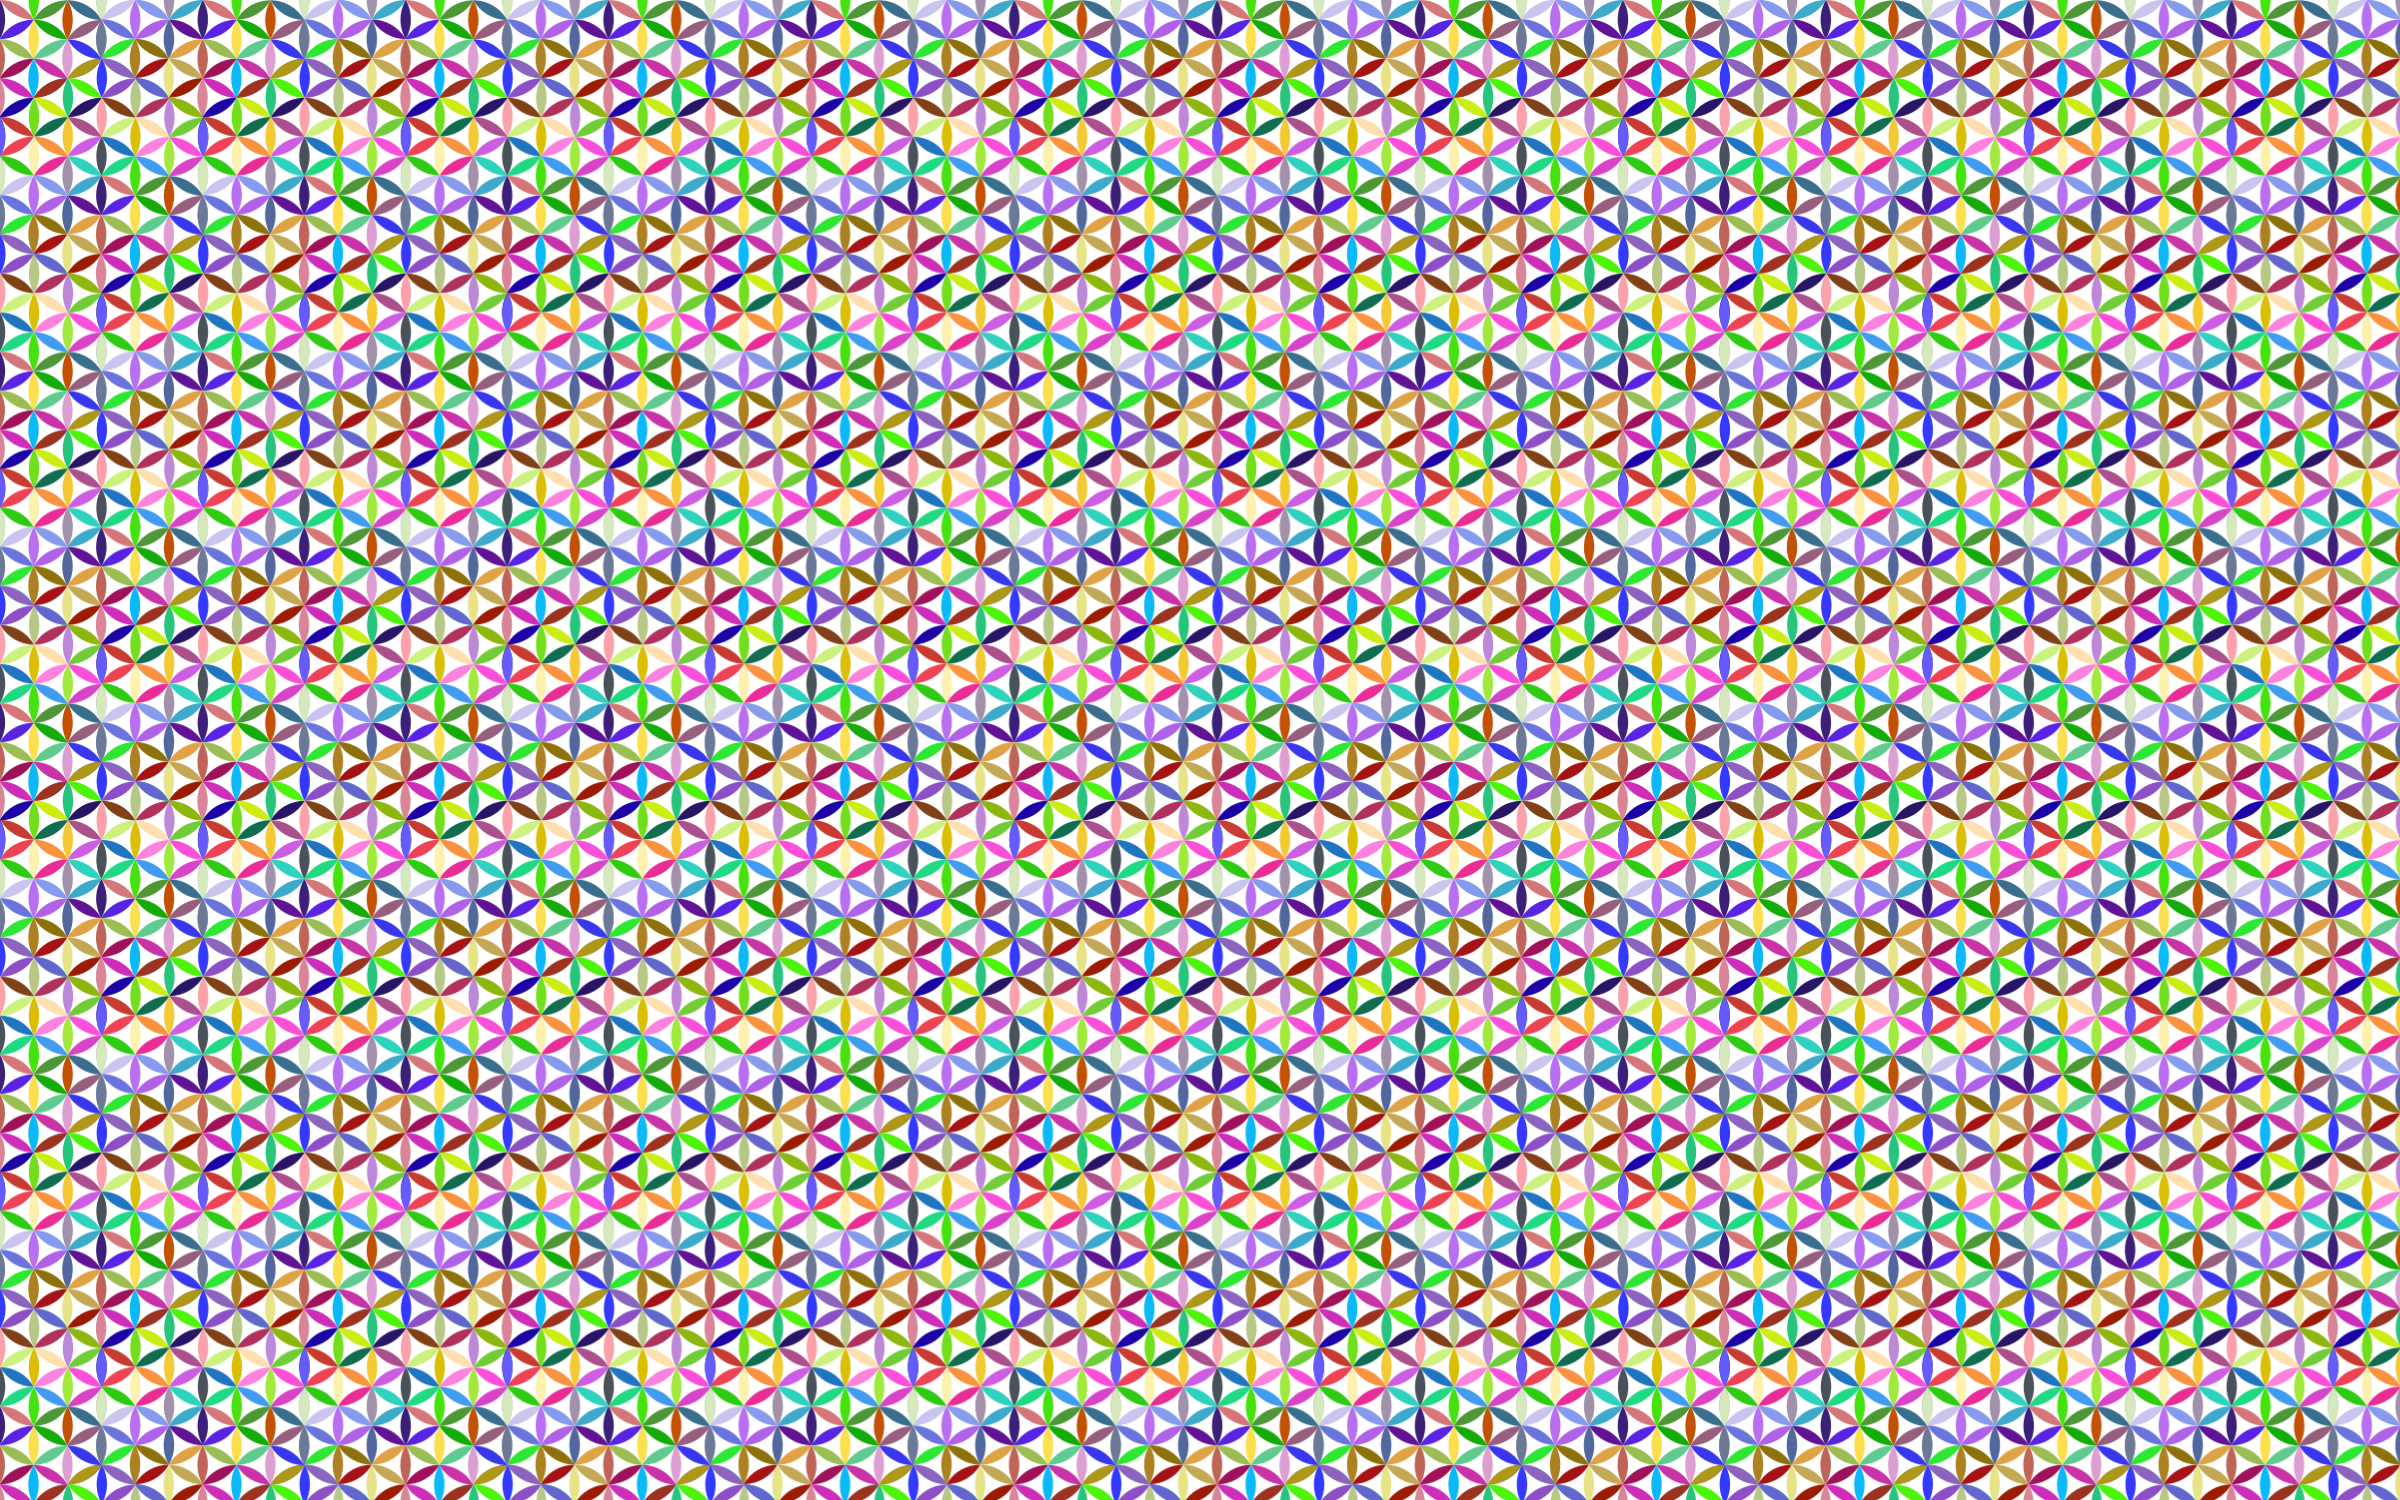 Seamless Prismatic Geometric Pattern by GDJ